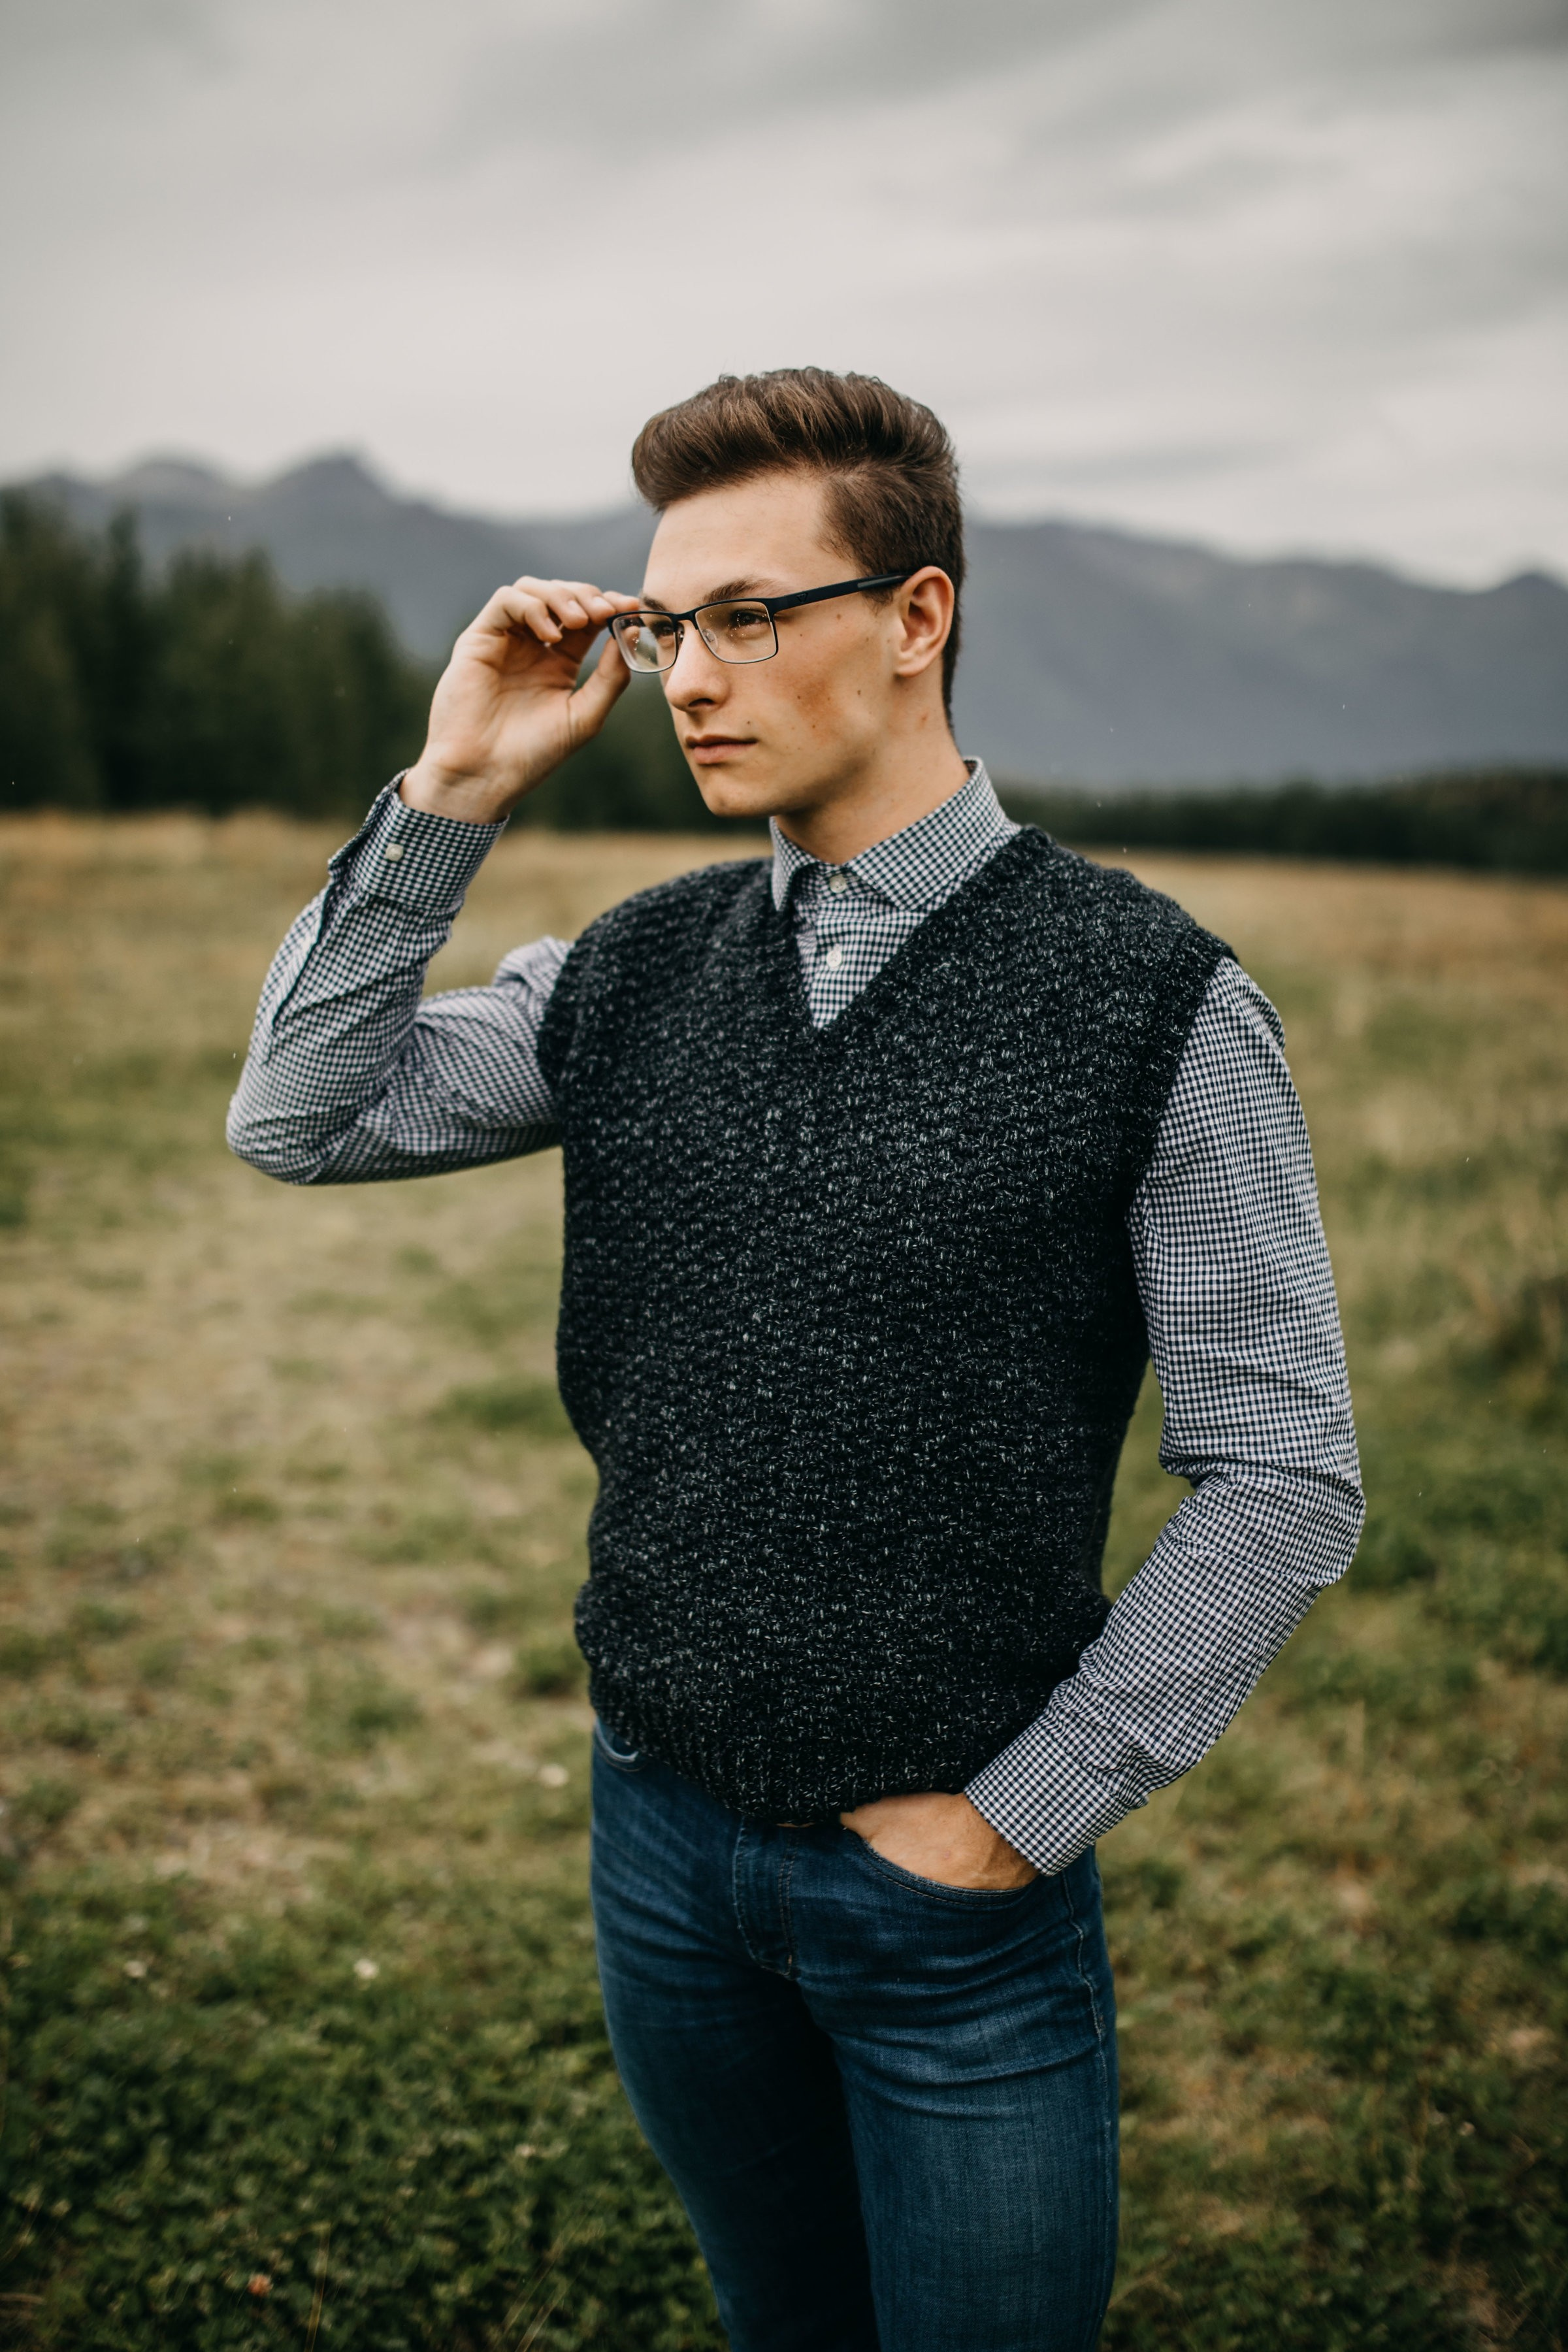 Summit Men's Sweater Vest by A Crocheted Simplicity